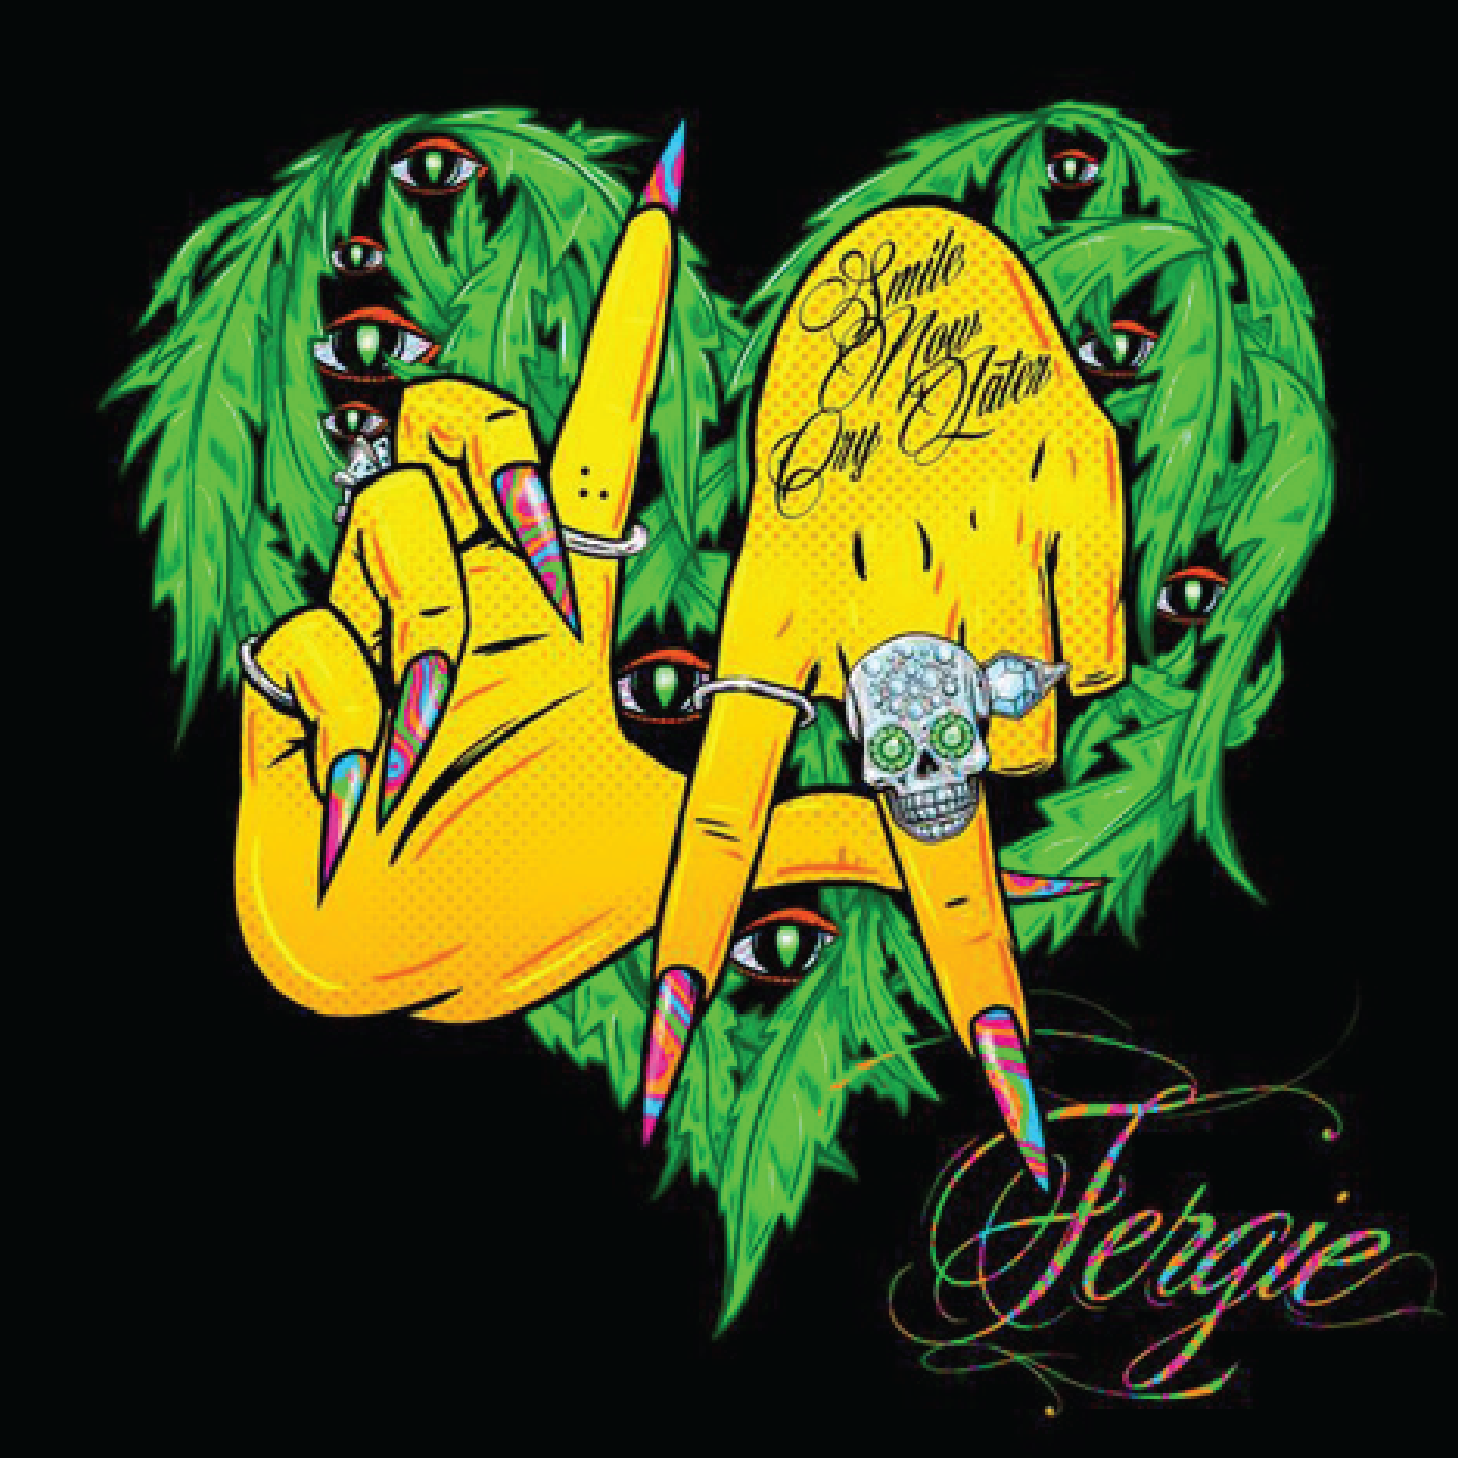 Fergie's new single, produced by DJ Mustard. Engineered and mixed by 1916′s own James Royo.